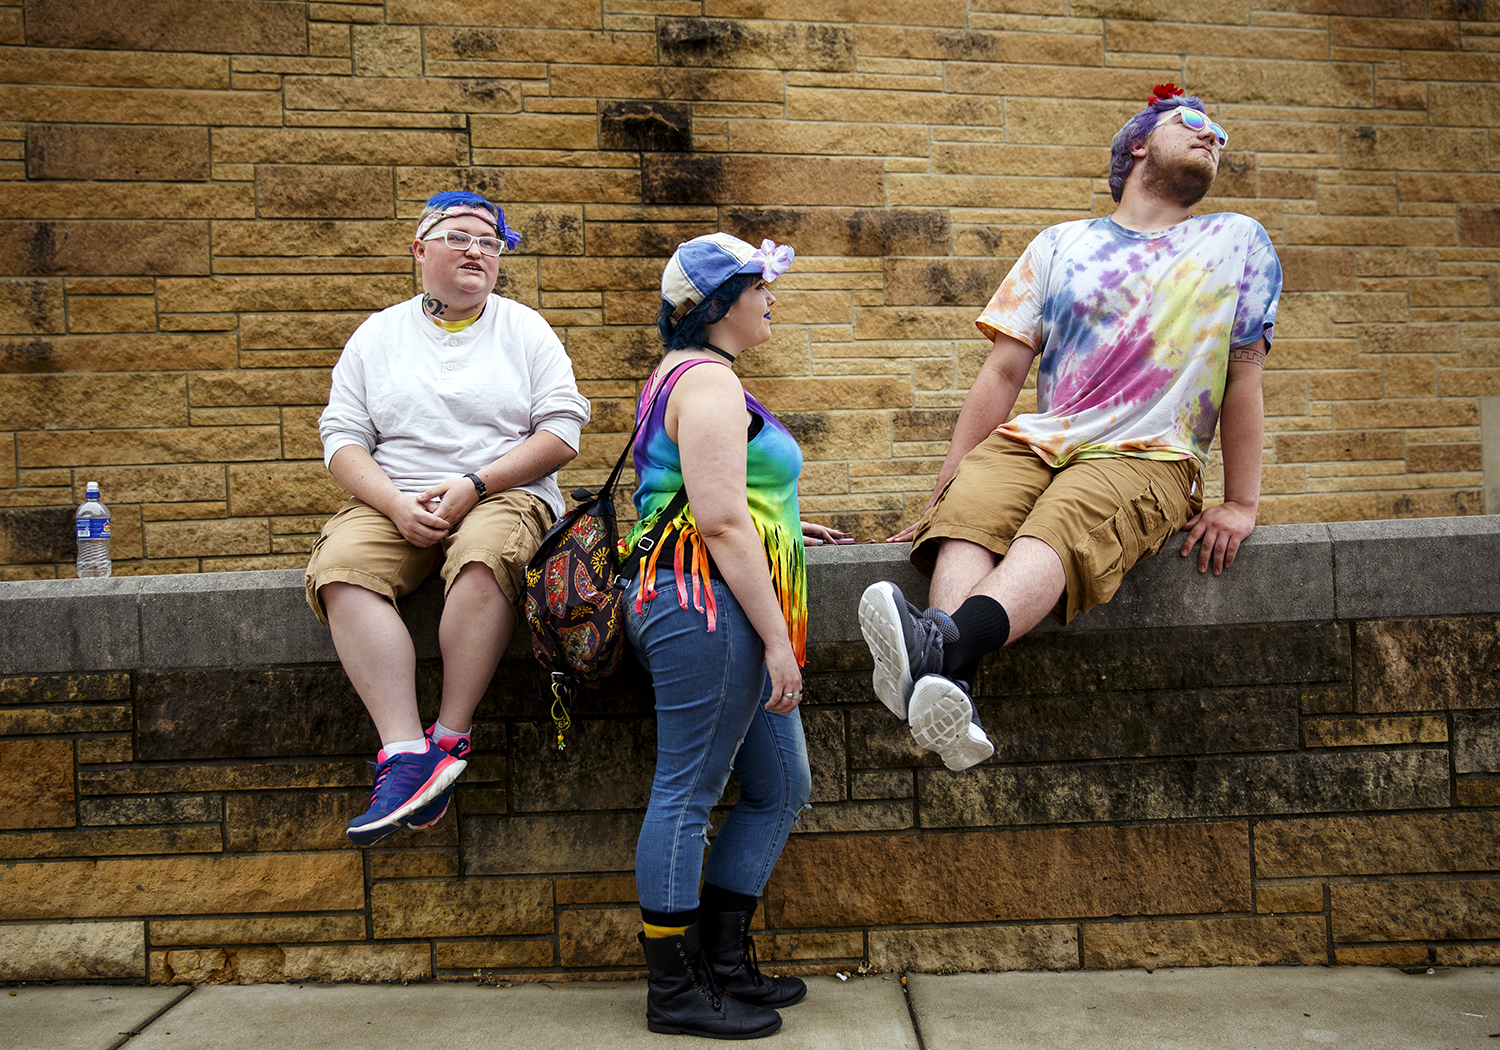 Breanna Fromm, left, Kaysi Vice and Austyn Stiner attended Springfield PrideFest May 20. For the first time, this year's festival included a parade. Rich Saal/The State Journal-Register